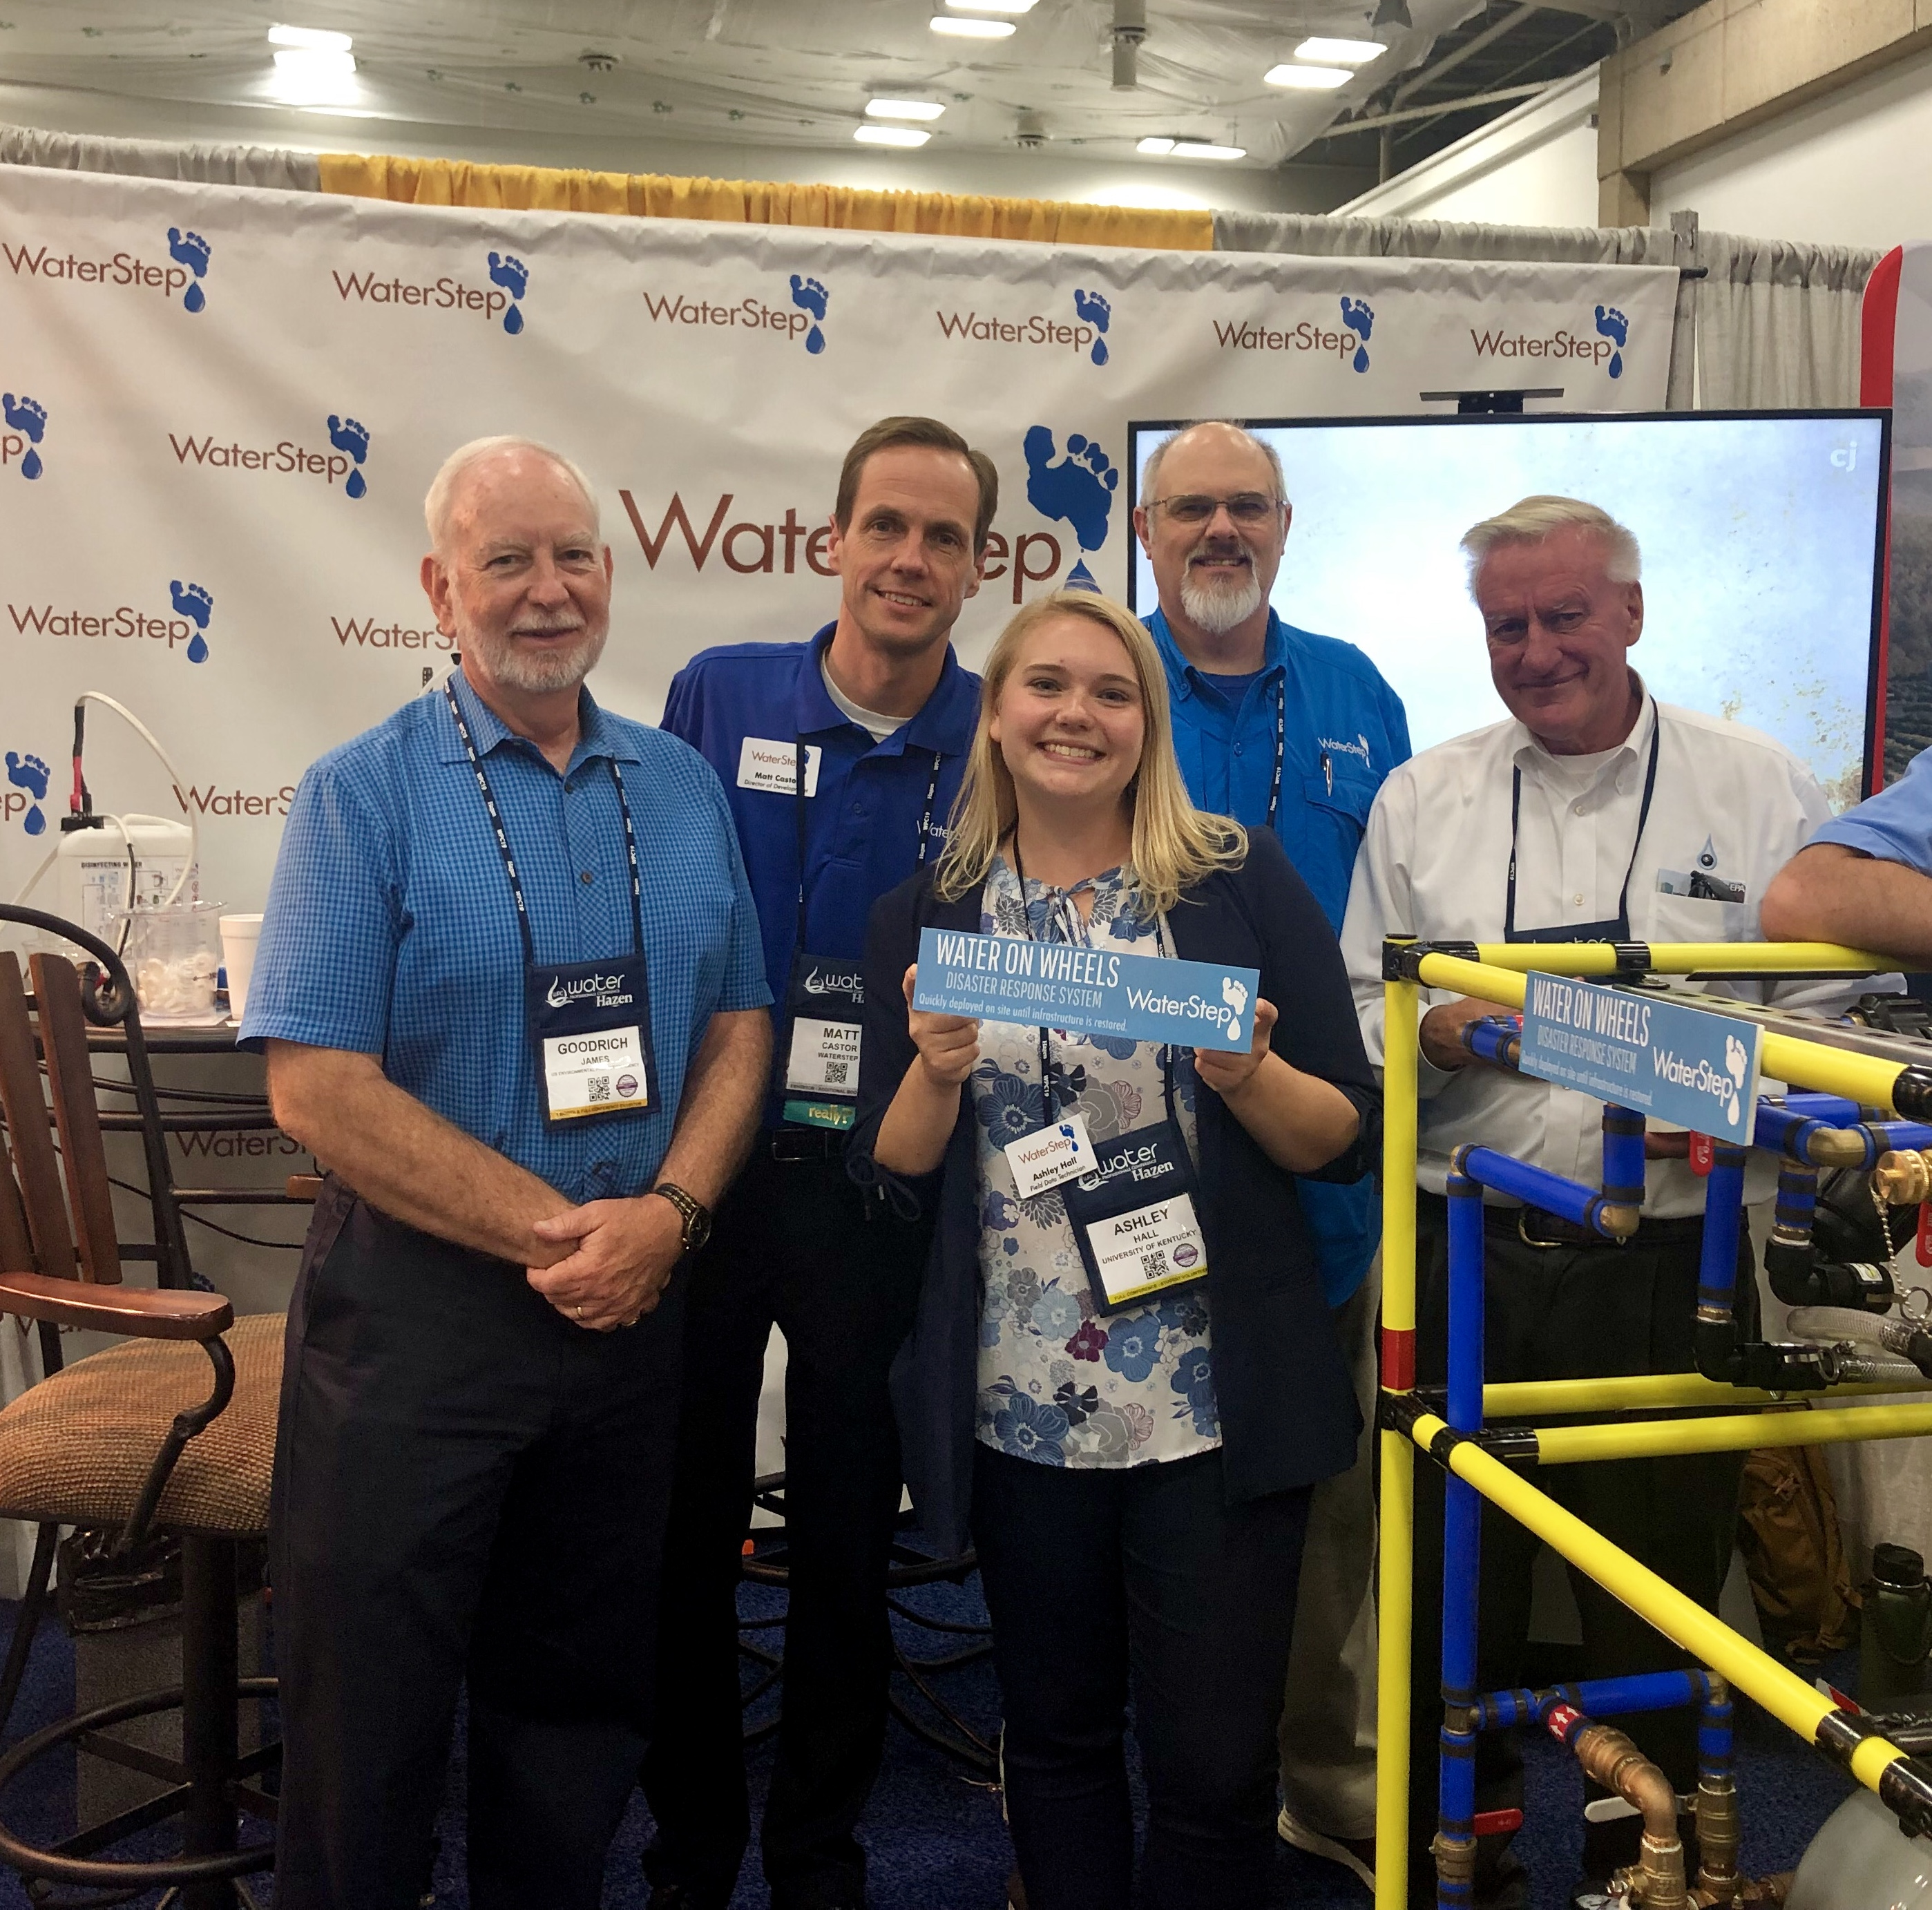 You are currently viewing WaterStep Unveils New Disaster Response Equipment